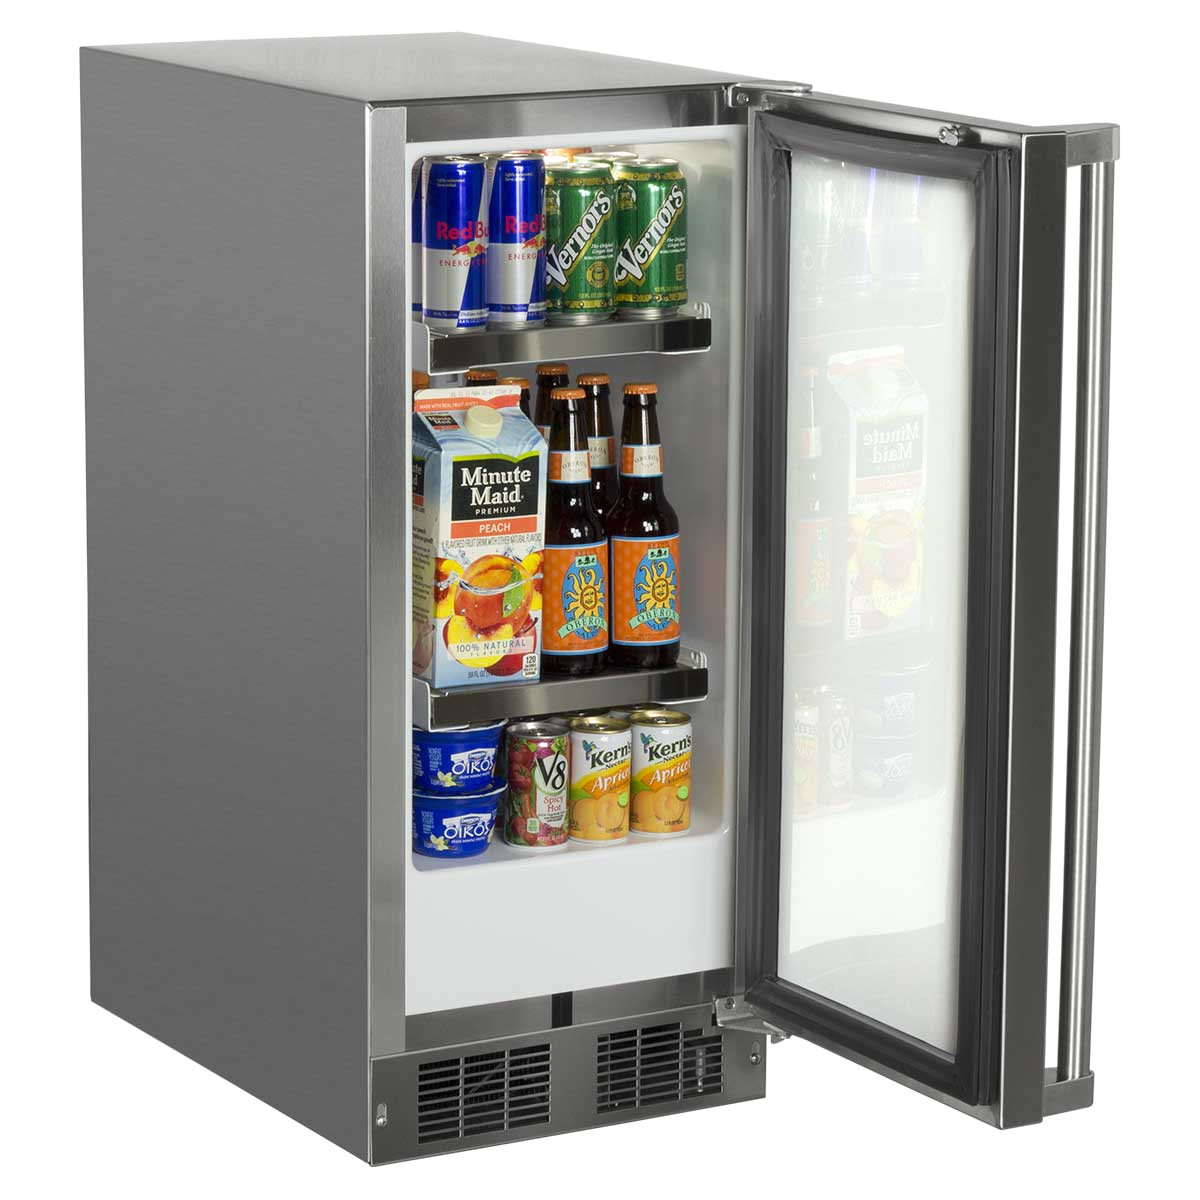 15 outdoor all refrigerator mo15ras2